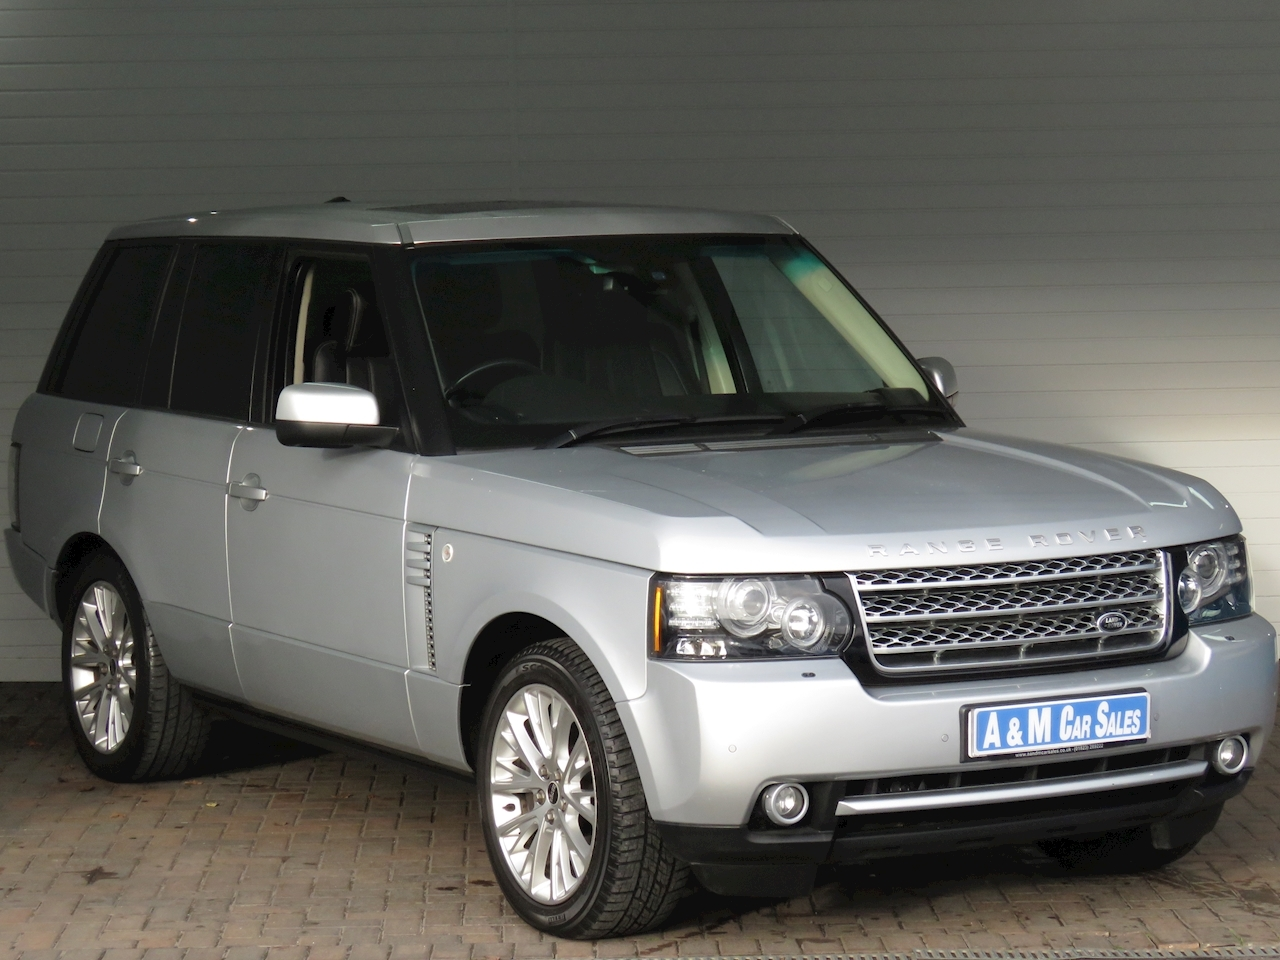 Land Rover Range Rover Range Rover Autob Tdv8 A Estate 4.4 Automatic Diesel